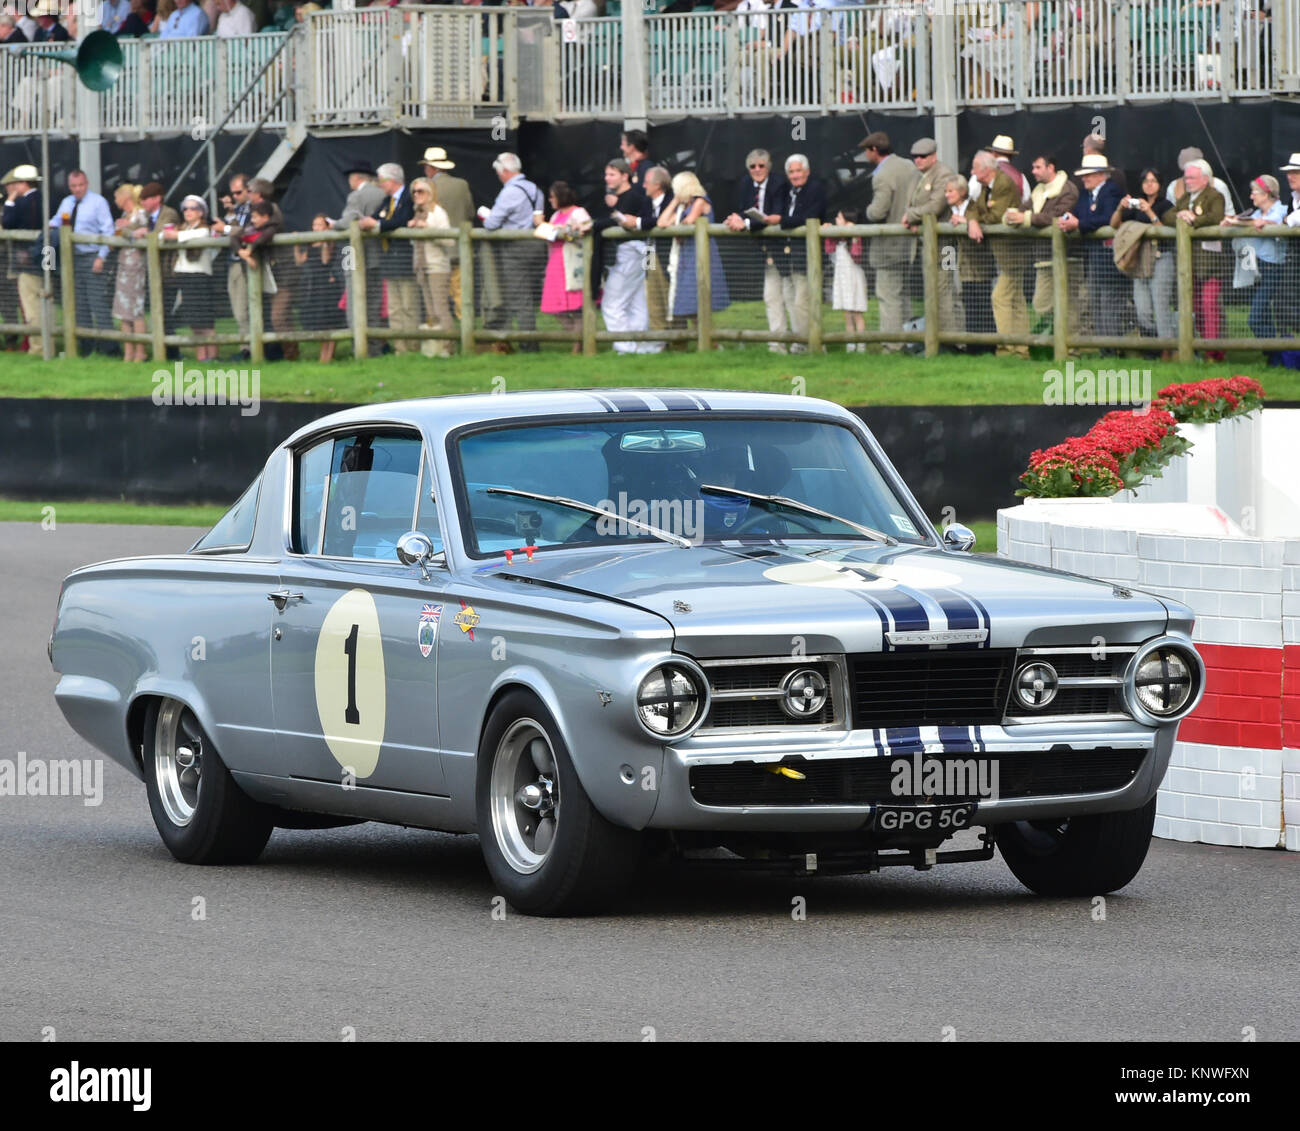 Oliver Bryant Andrew Jordan Plymouth Barracuda Gpg5c Shelby